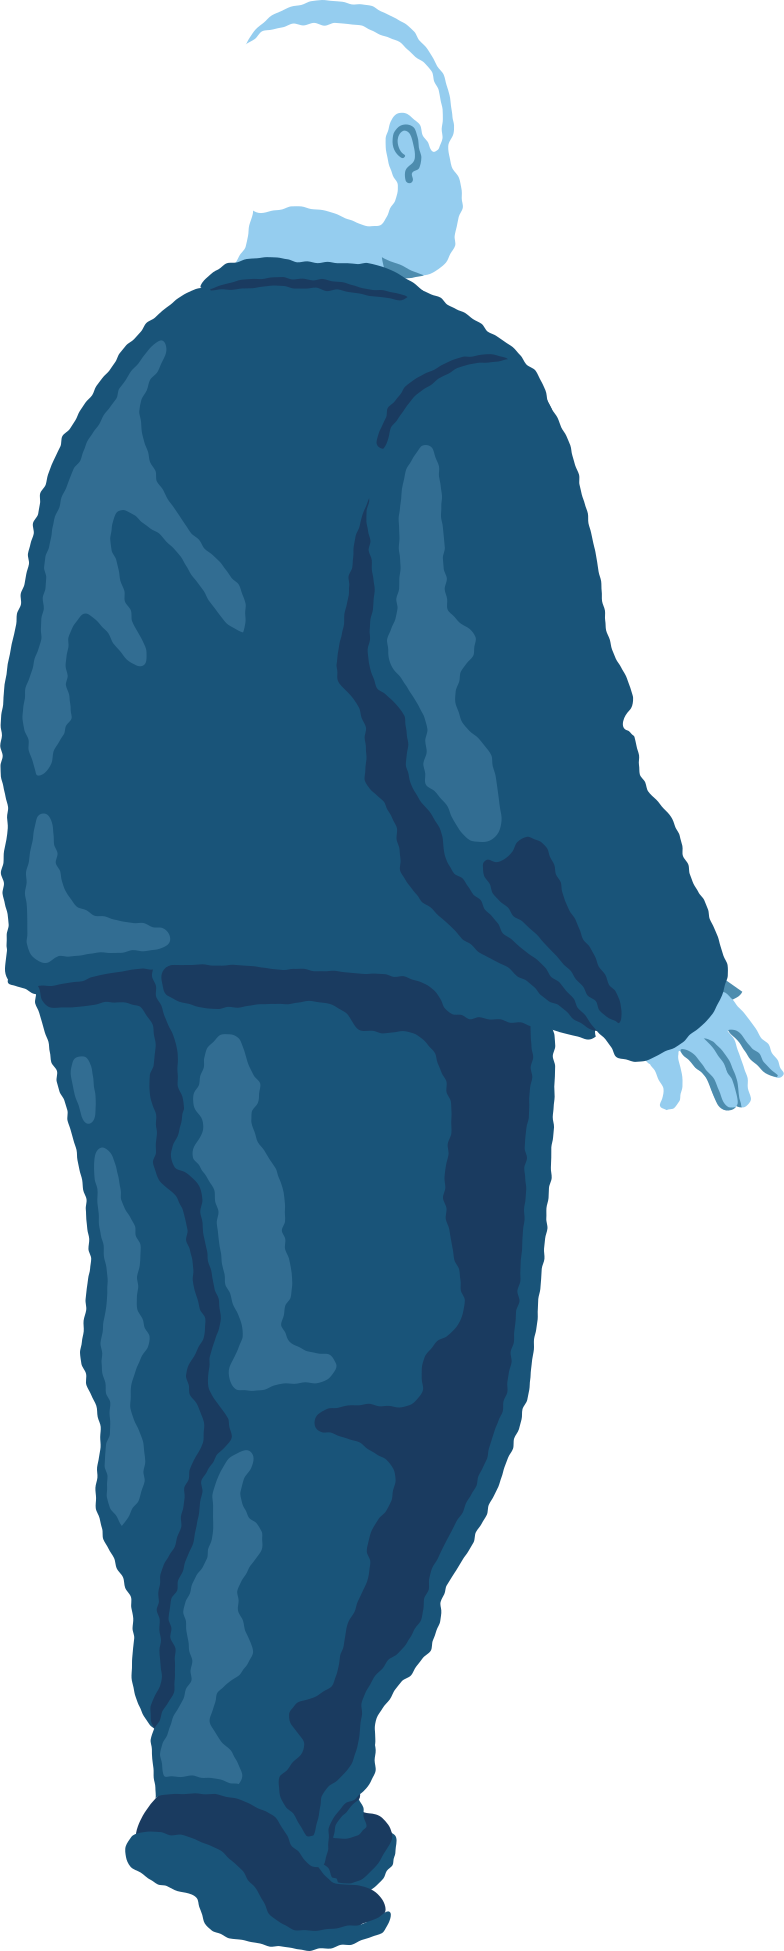 style old chubby man standing back Vector images in PNG and SVG | Icons8 Illustrations